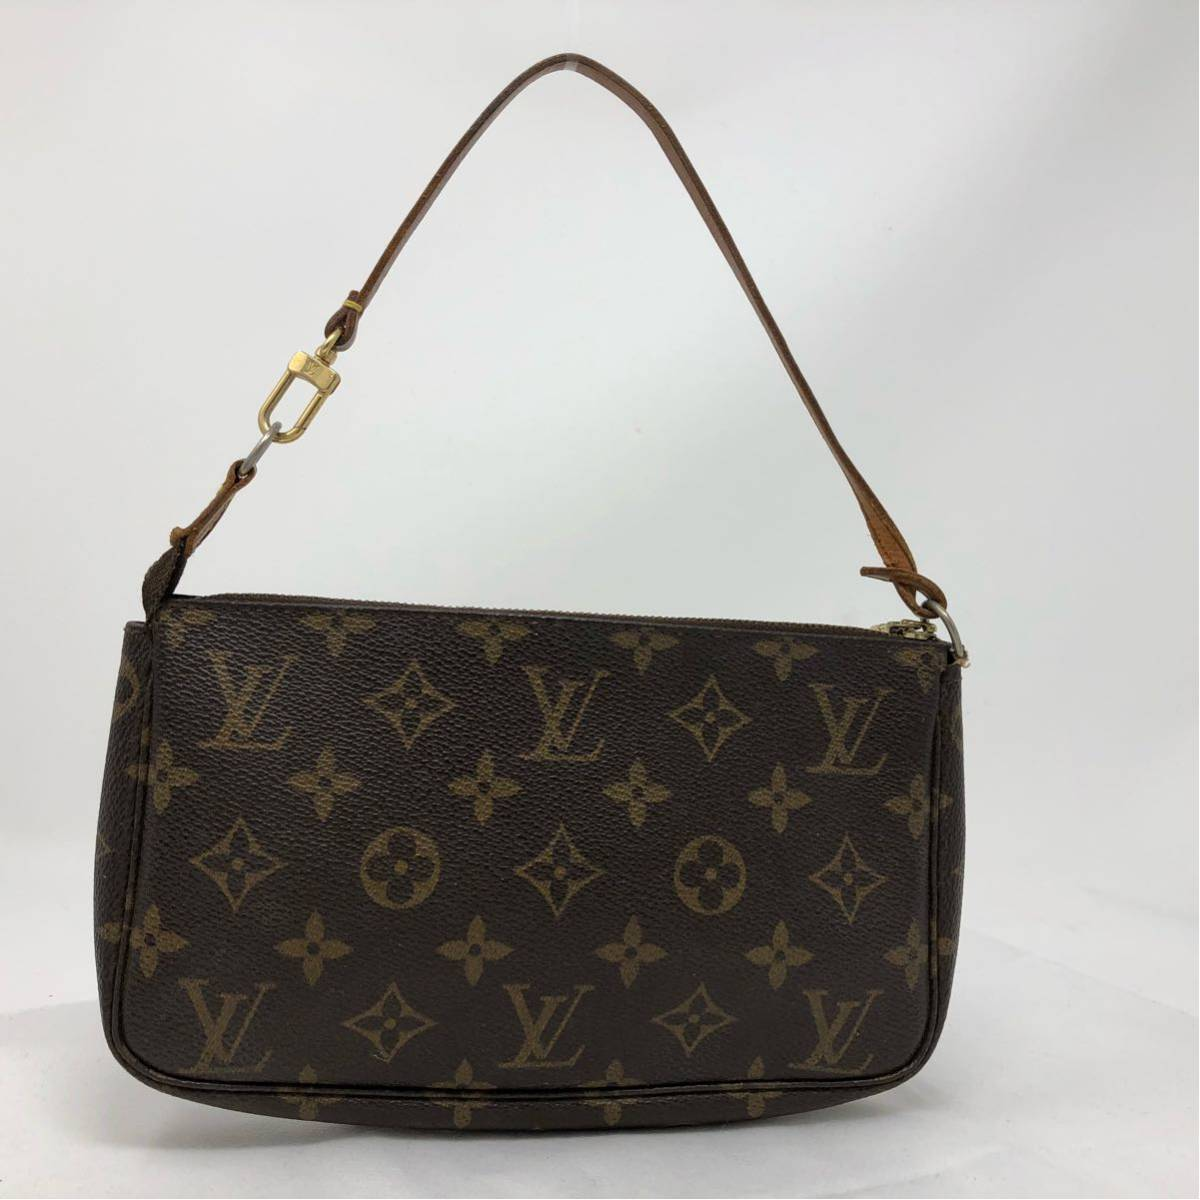 a1b930d441a8 LOUIS VUITTON ルイヴィトン モノグラム アクセサリー ポーチ バッグ 正規品の1番目 ...